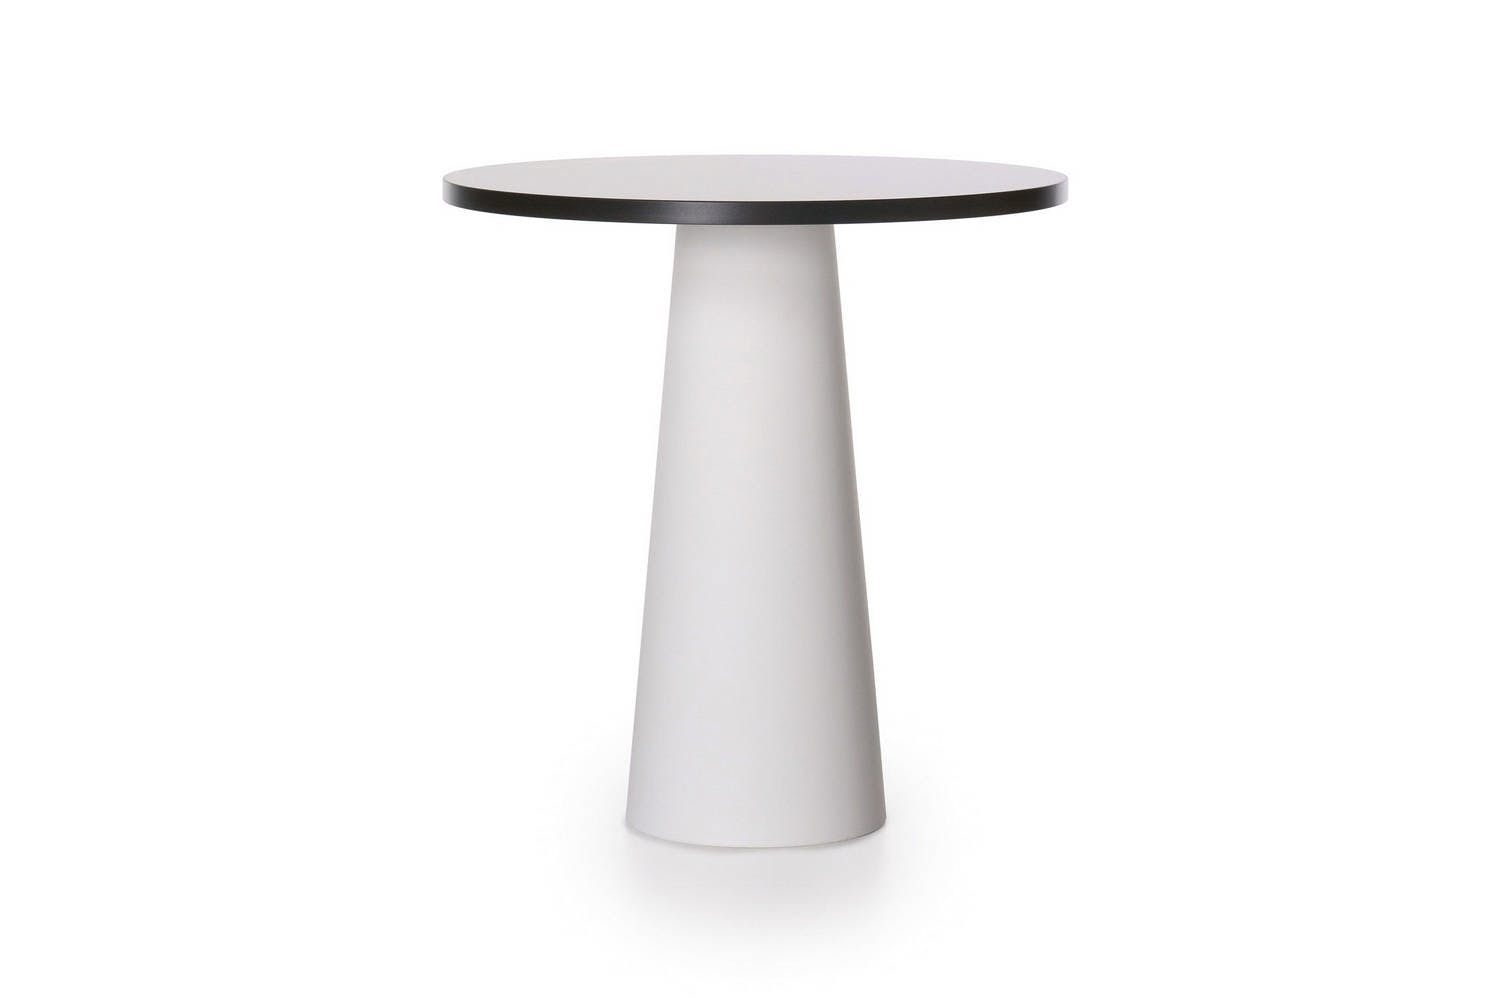 Container Tafel Moooi : Container table 7130 by marcel wanders for moooi space furniture